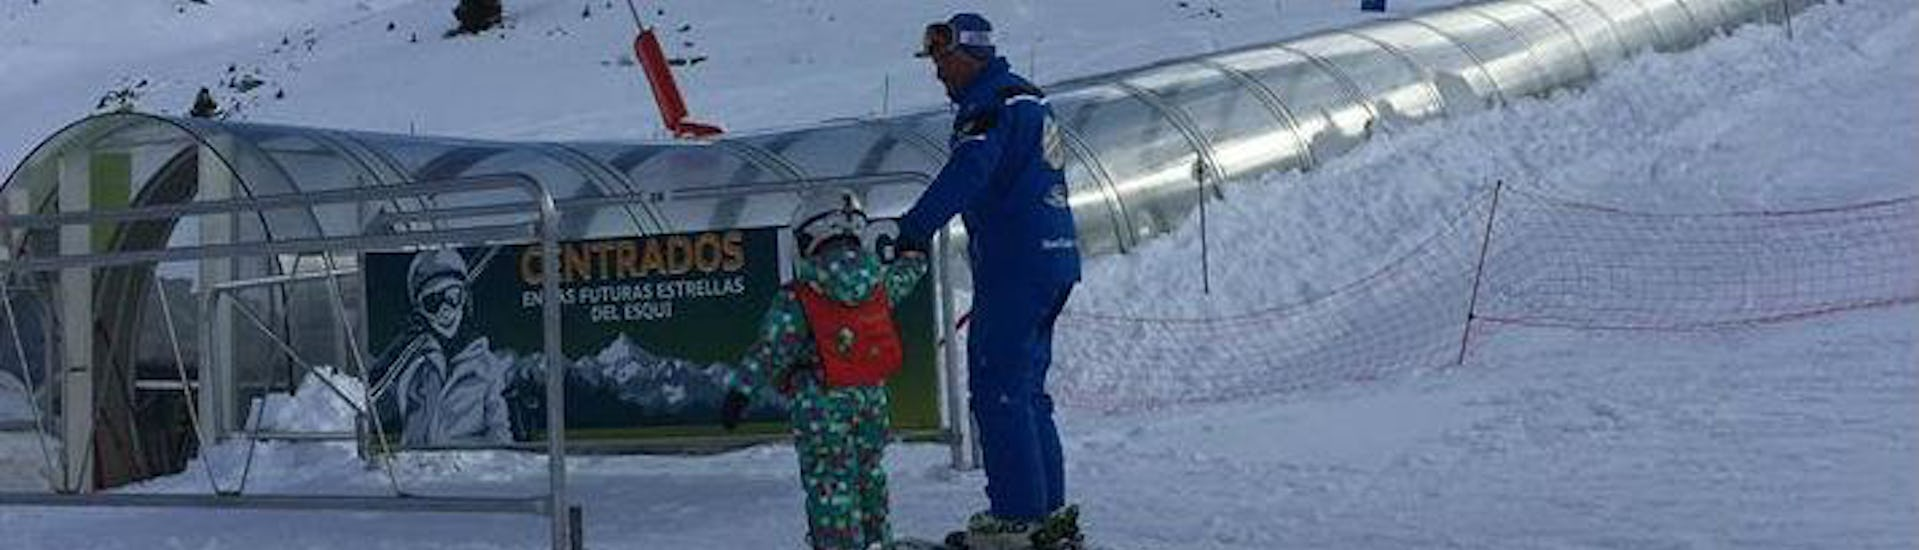 Ski Lessons for Kids (from 4 years) - High Season